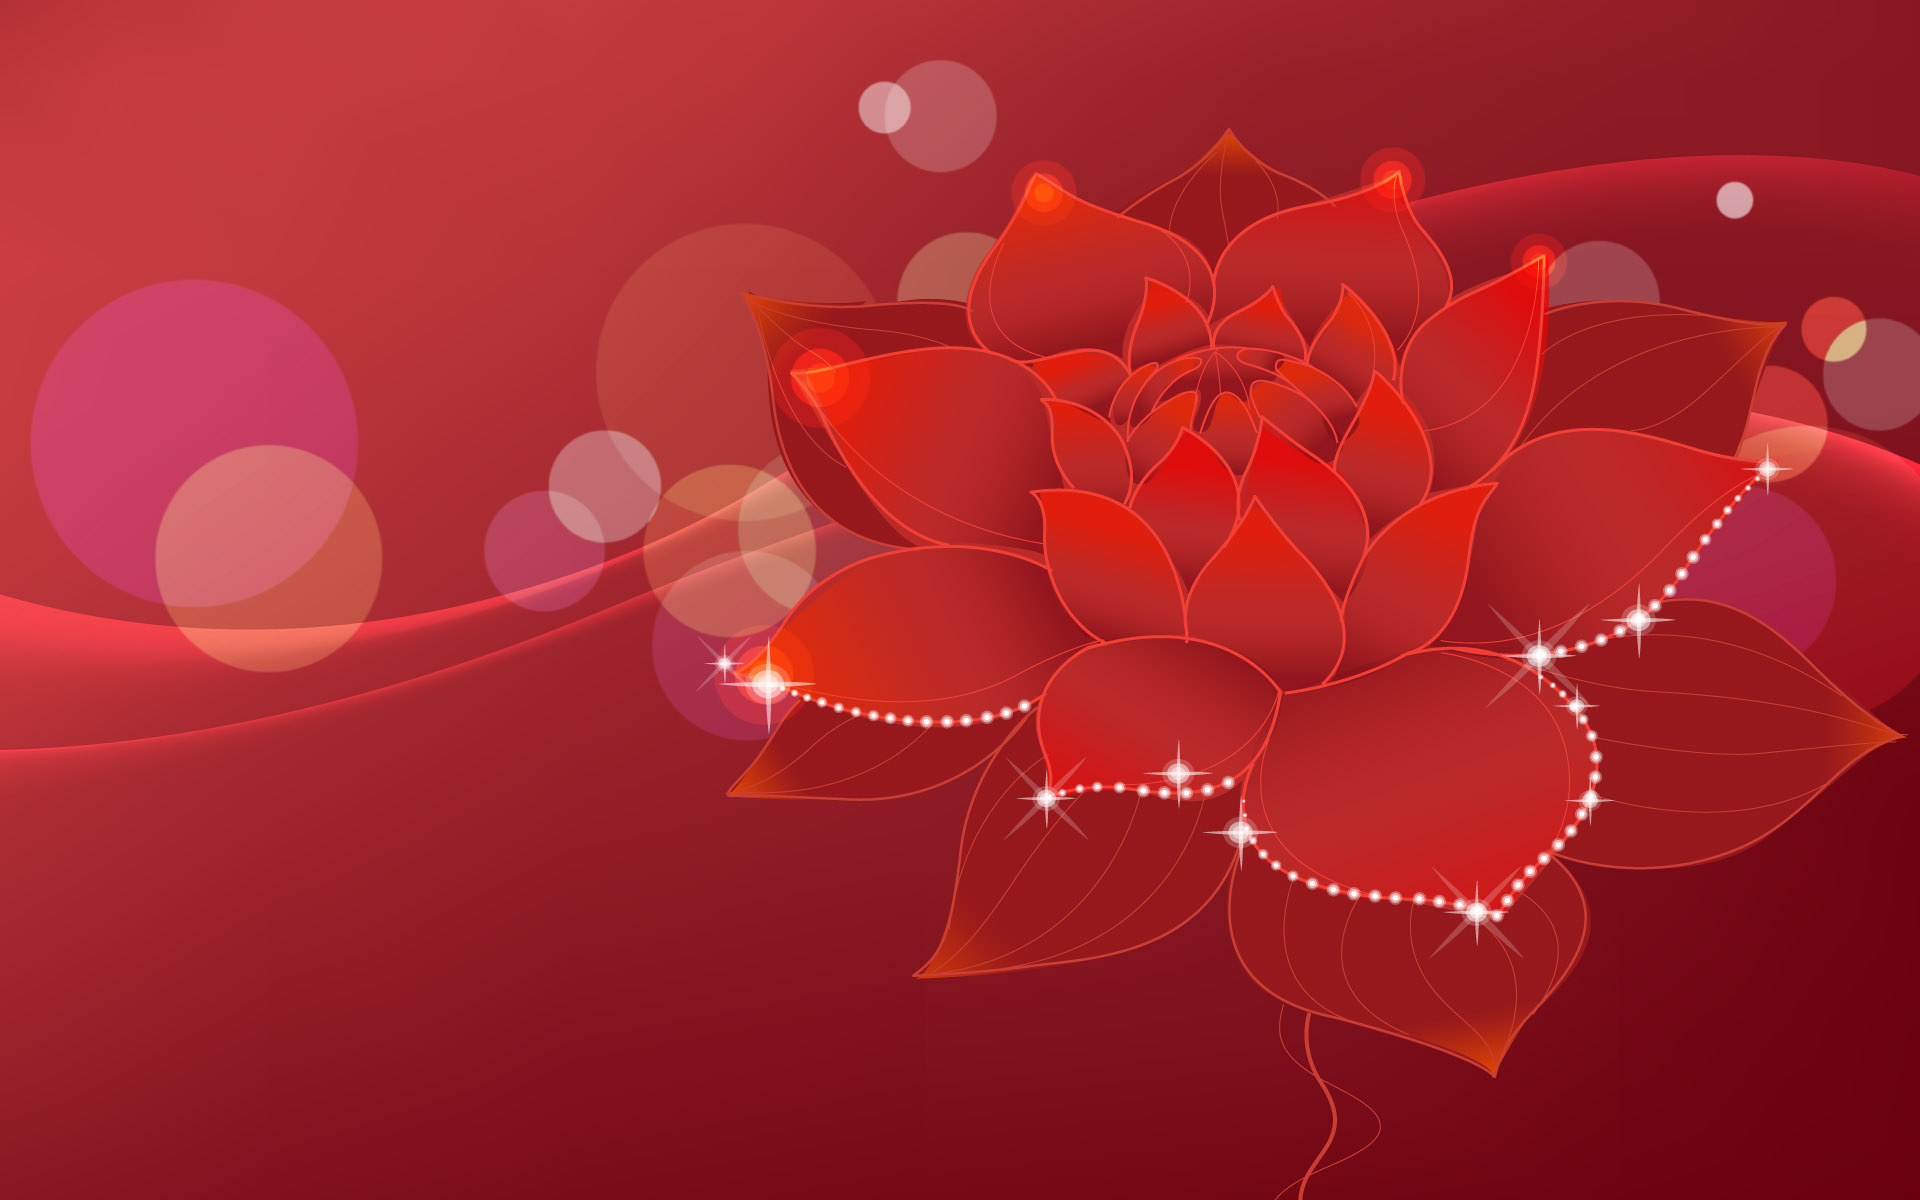 Red flower background photo